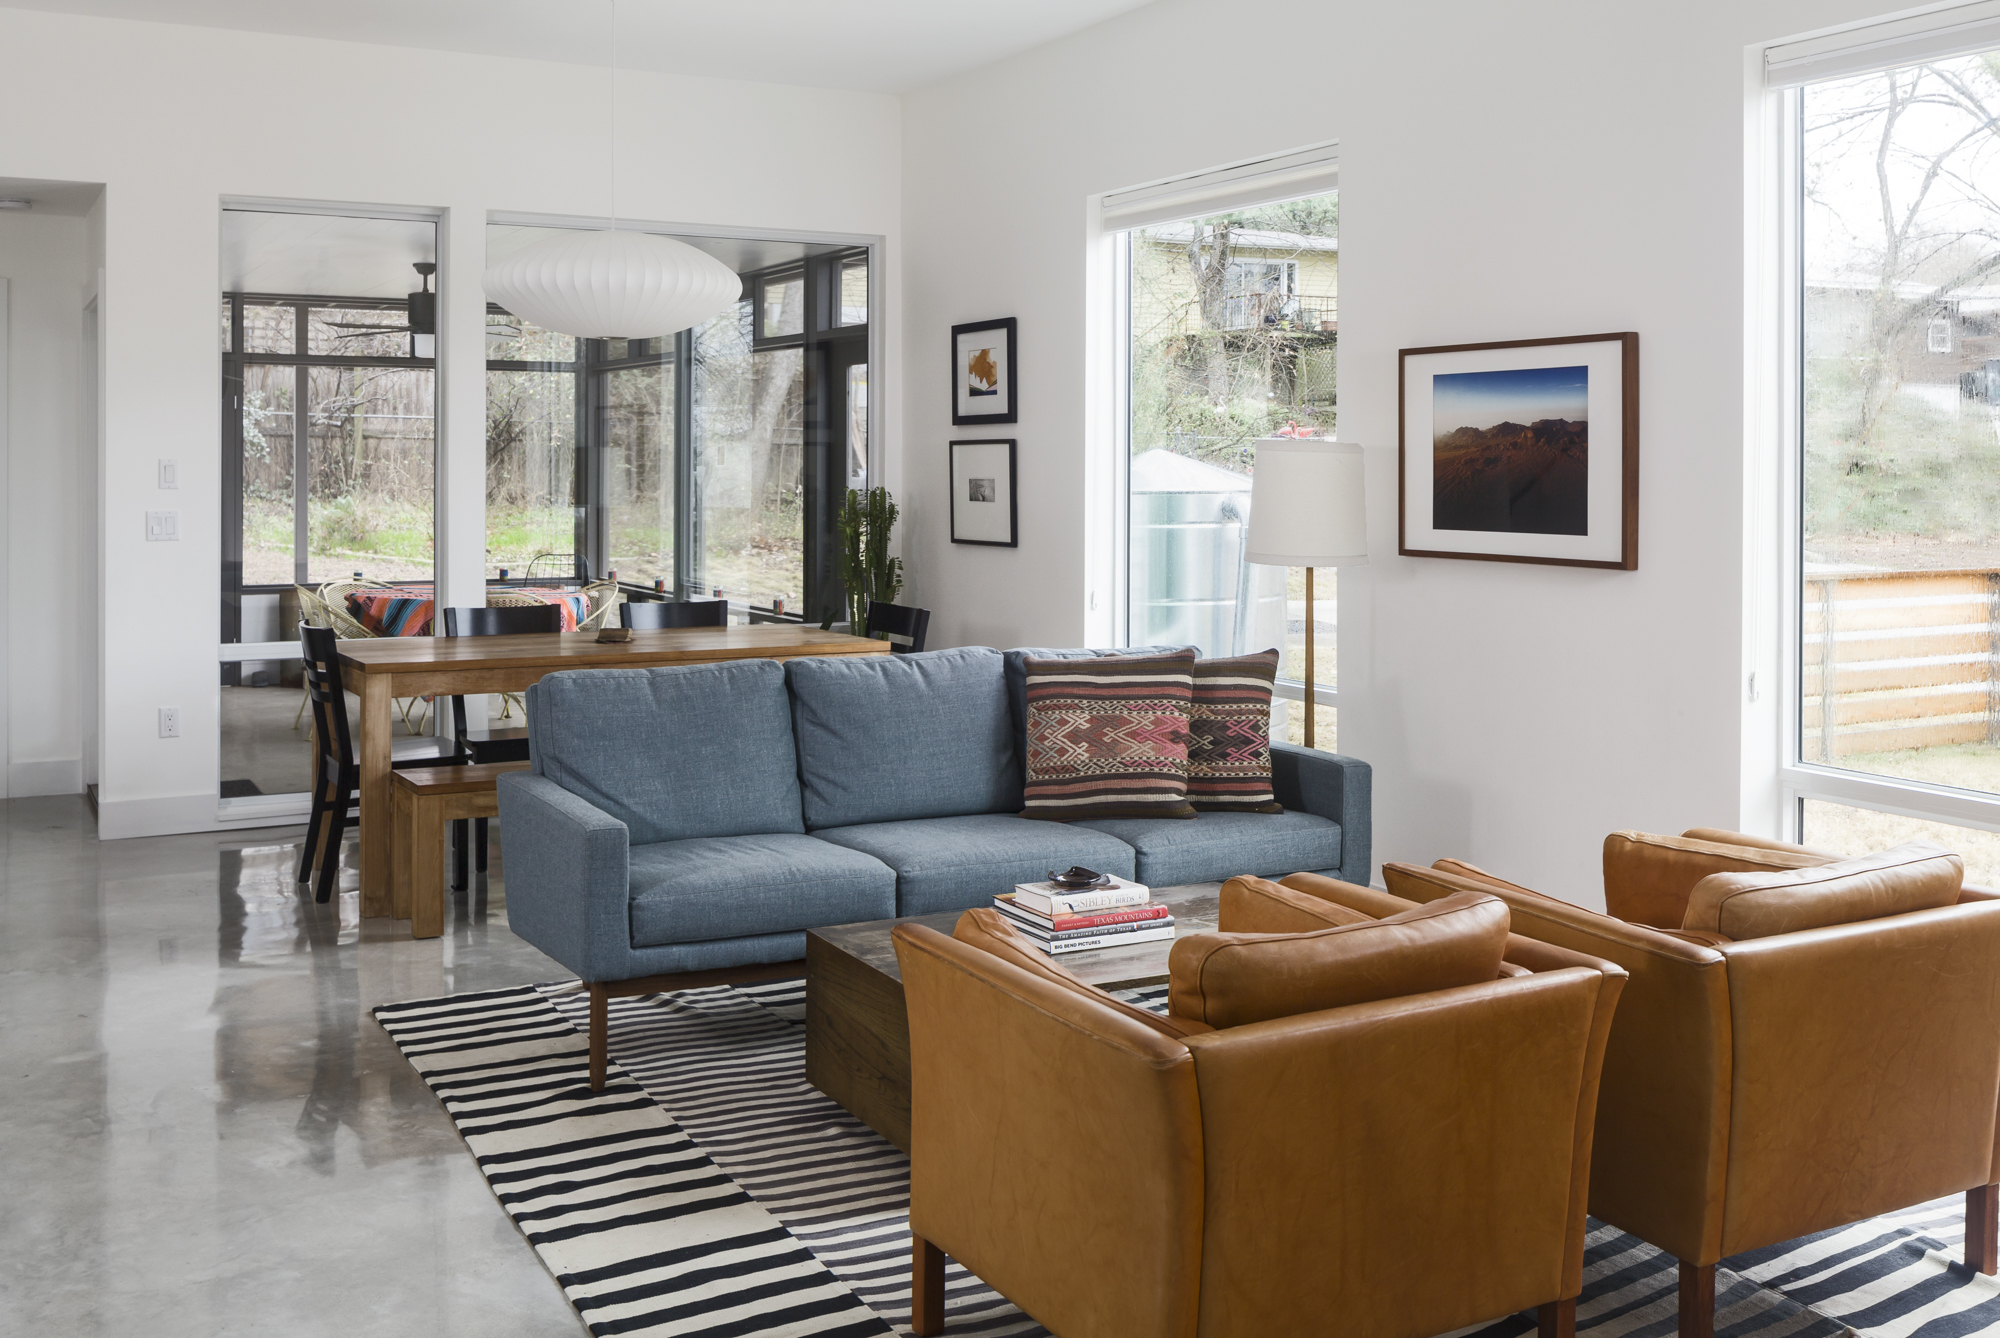 In Central Austin a modern home merges brains and beauty Curbed